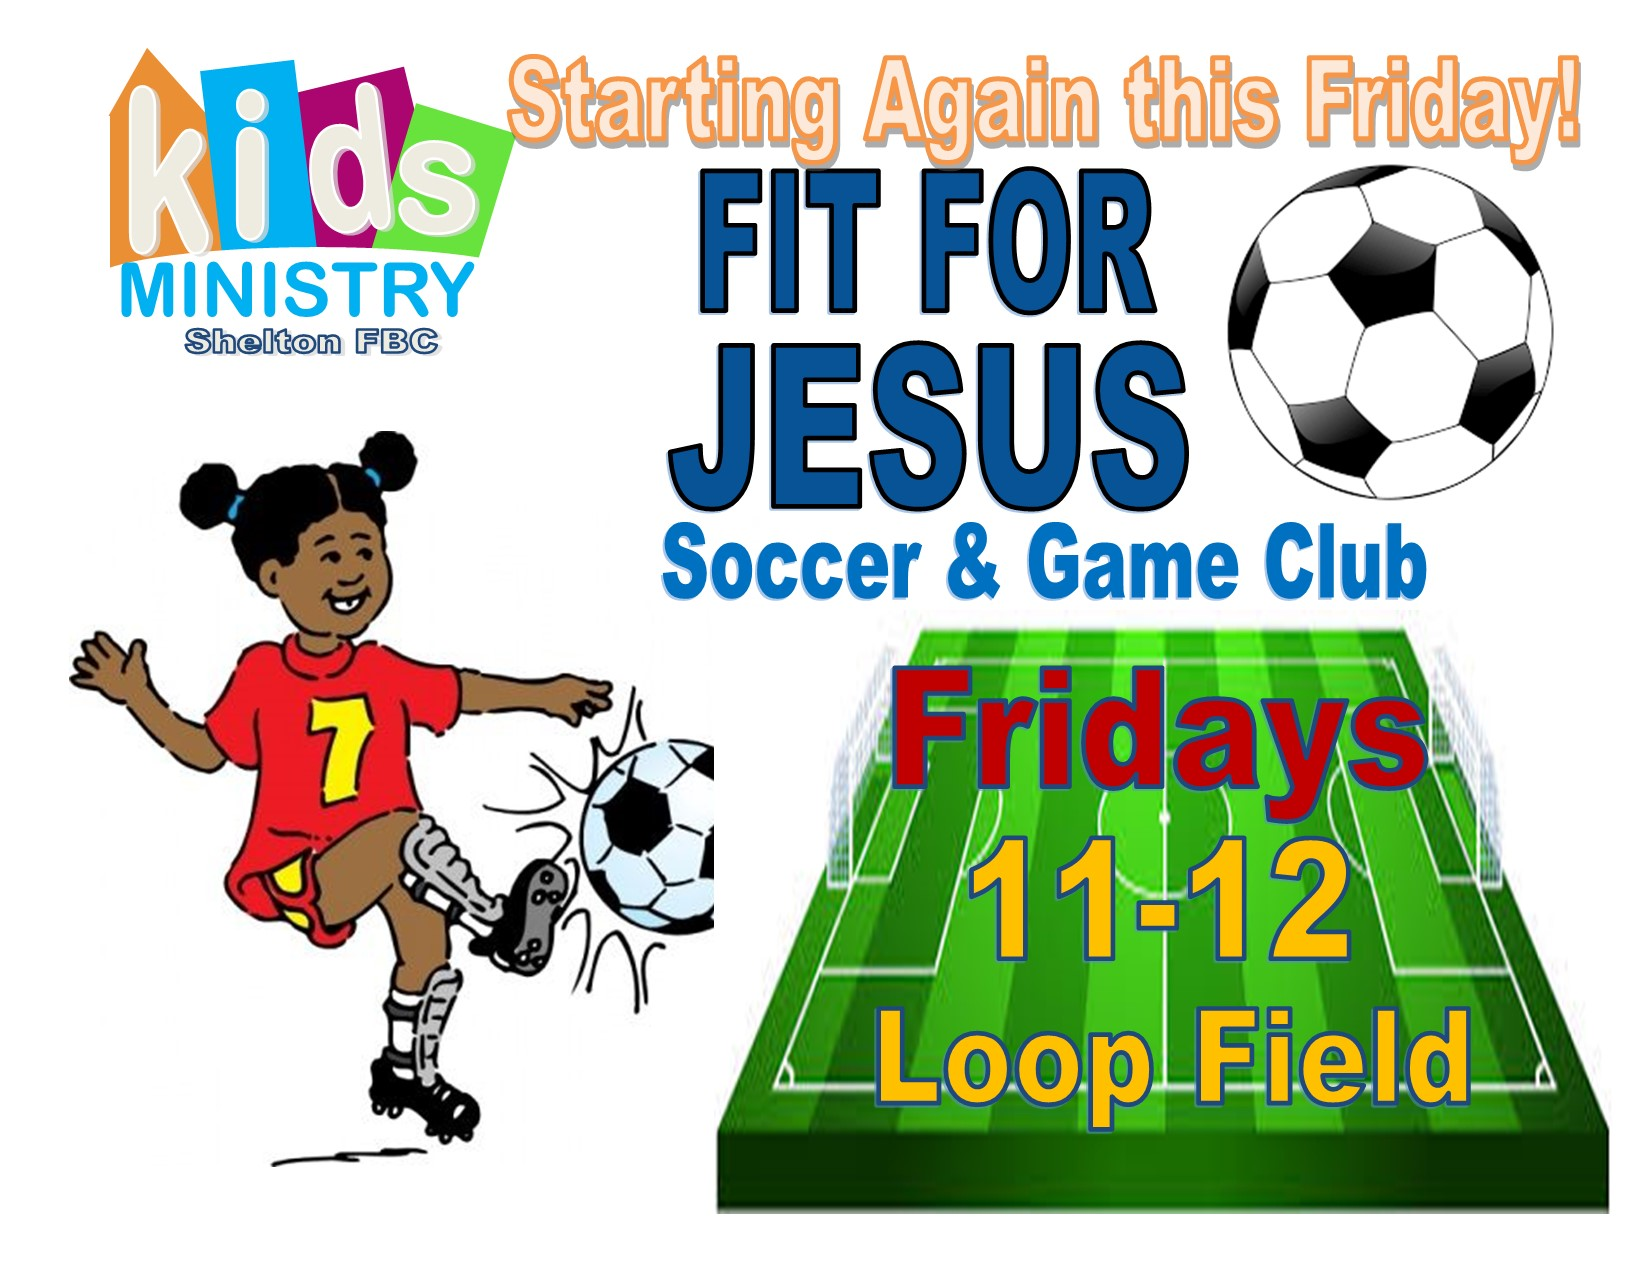 Fit for Jesus